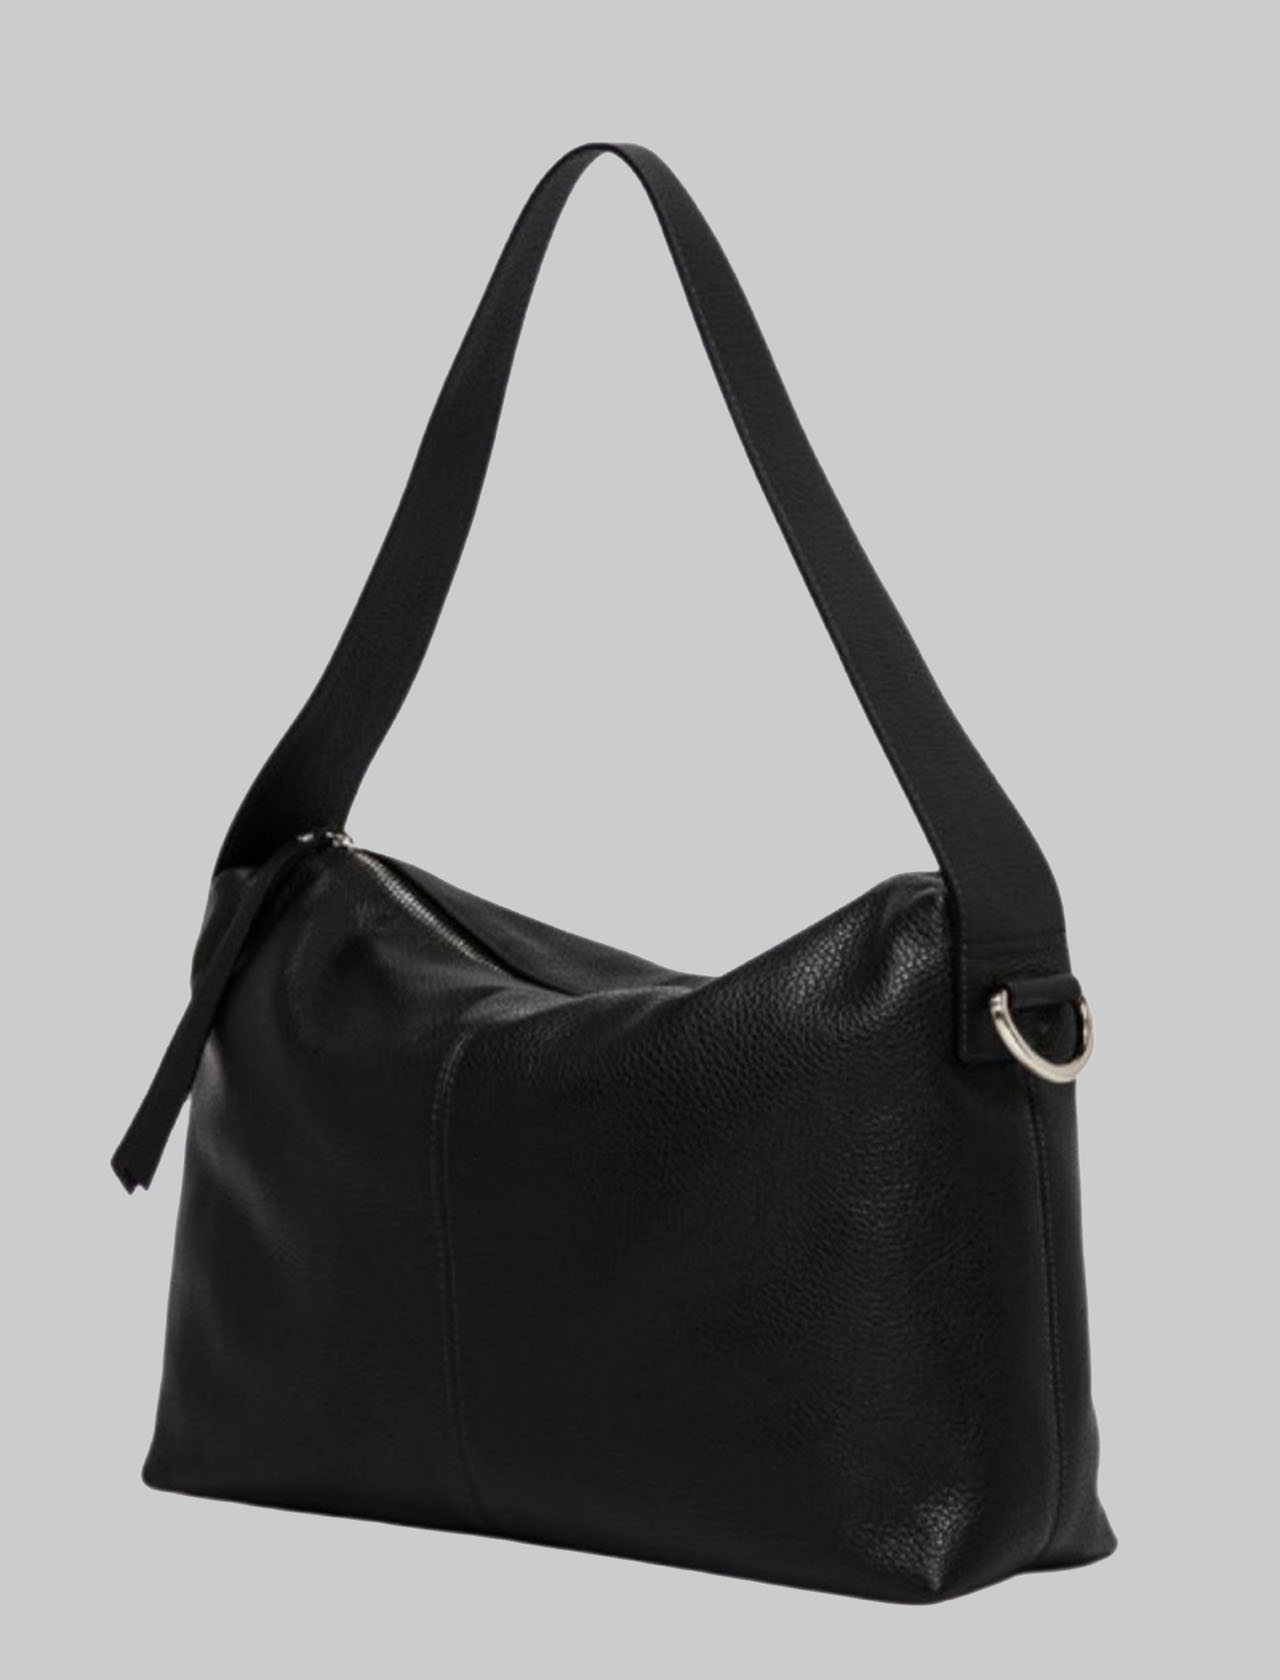 Woman Shoulder Bag Giorgia In Black Leather With Handle And Removable And Adjustable Fabric Shoulder Strap Gianni Chiarini | Bags and backpacks | BS7249001